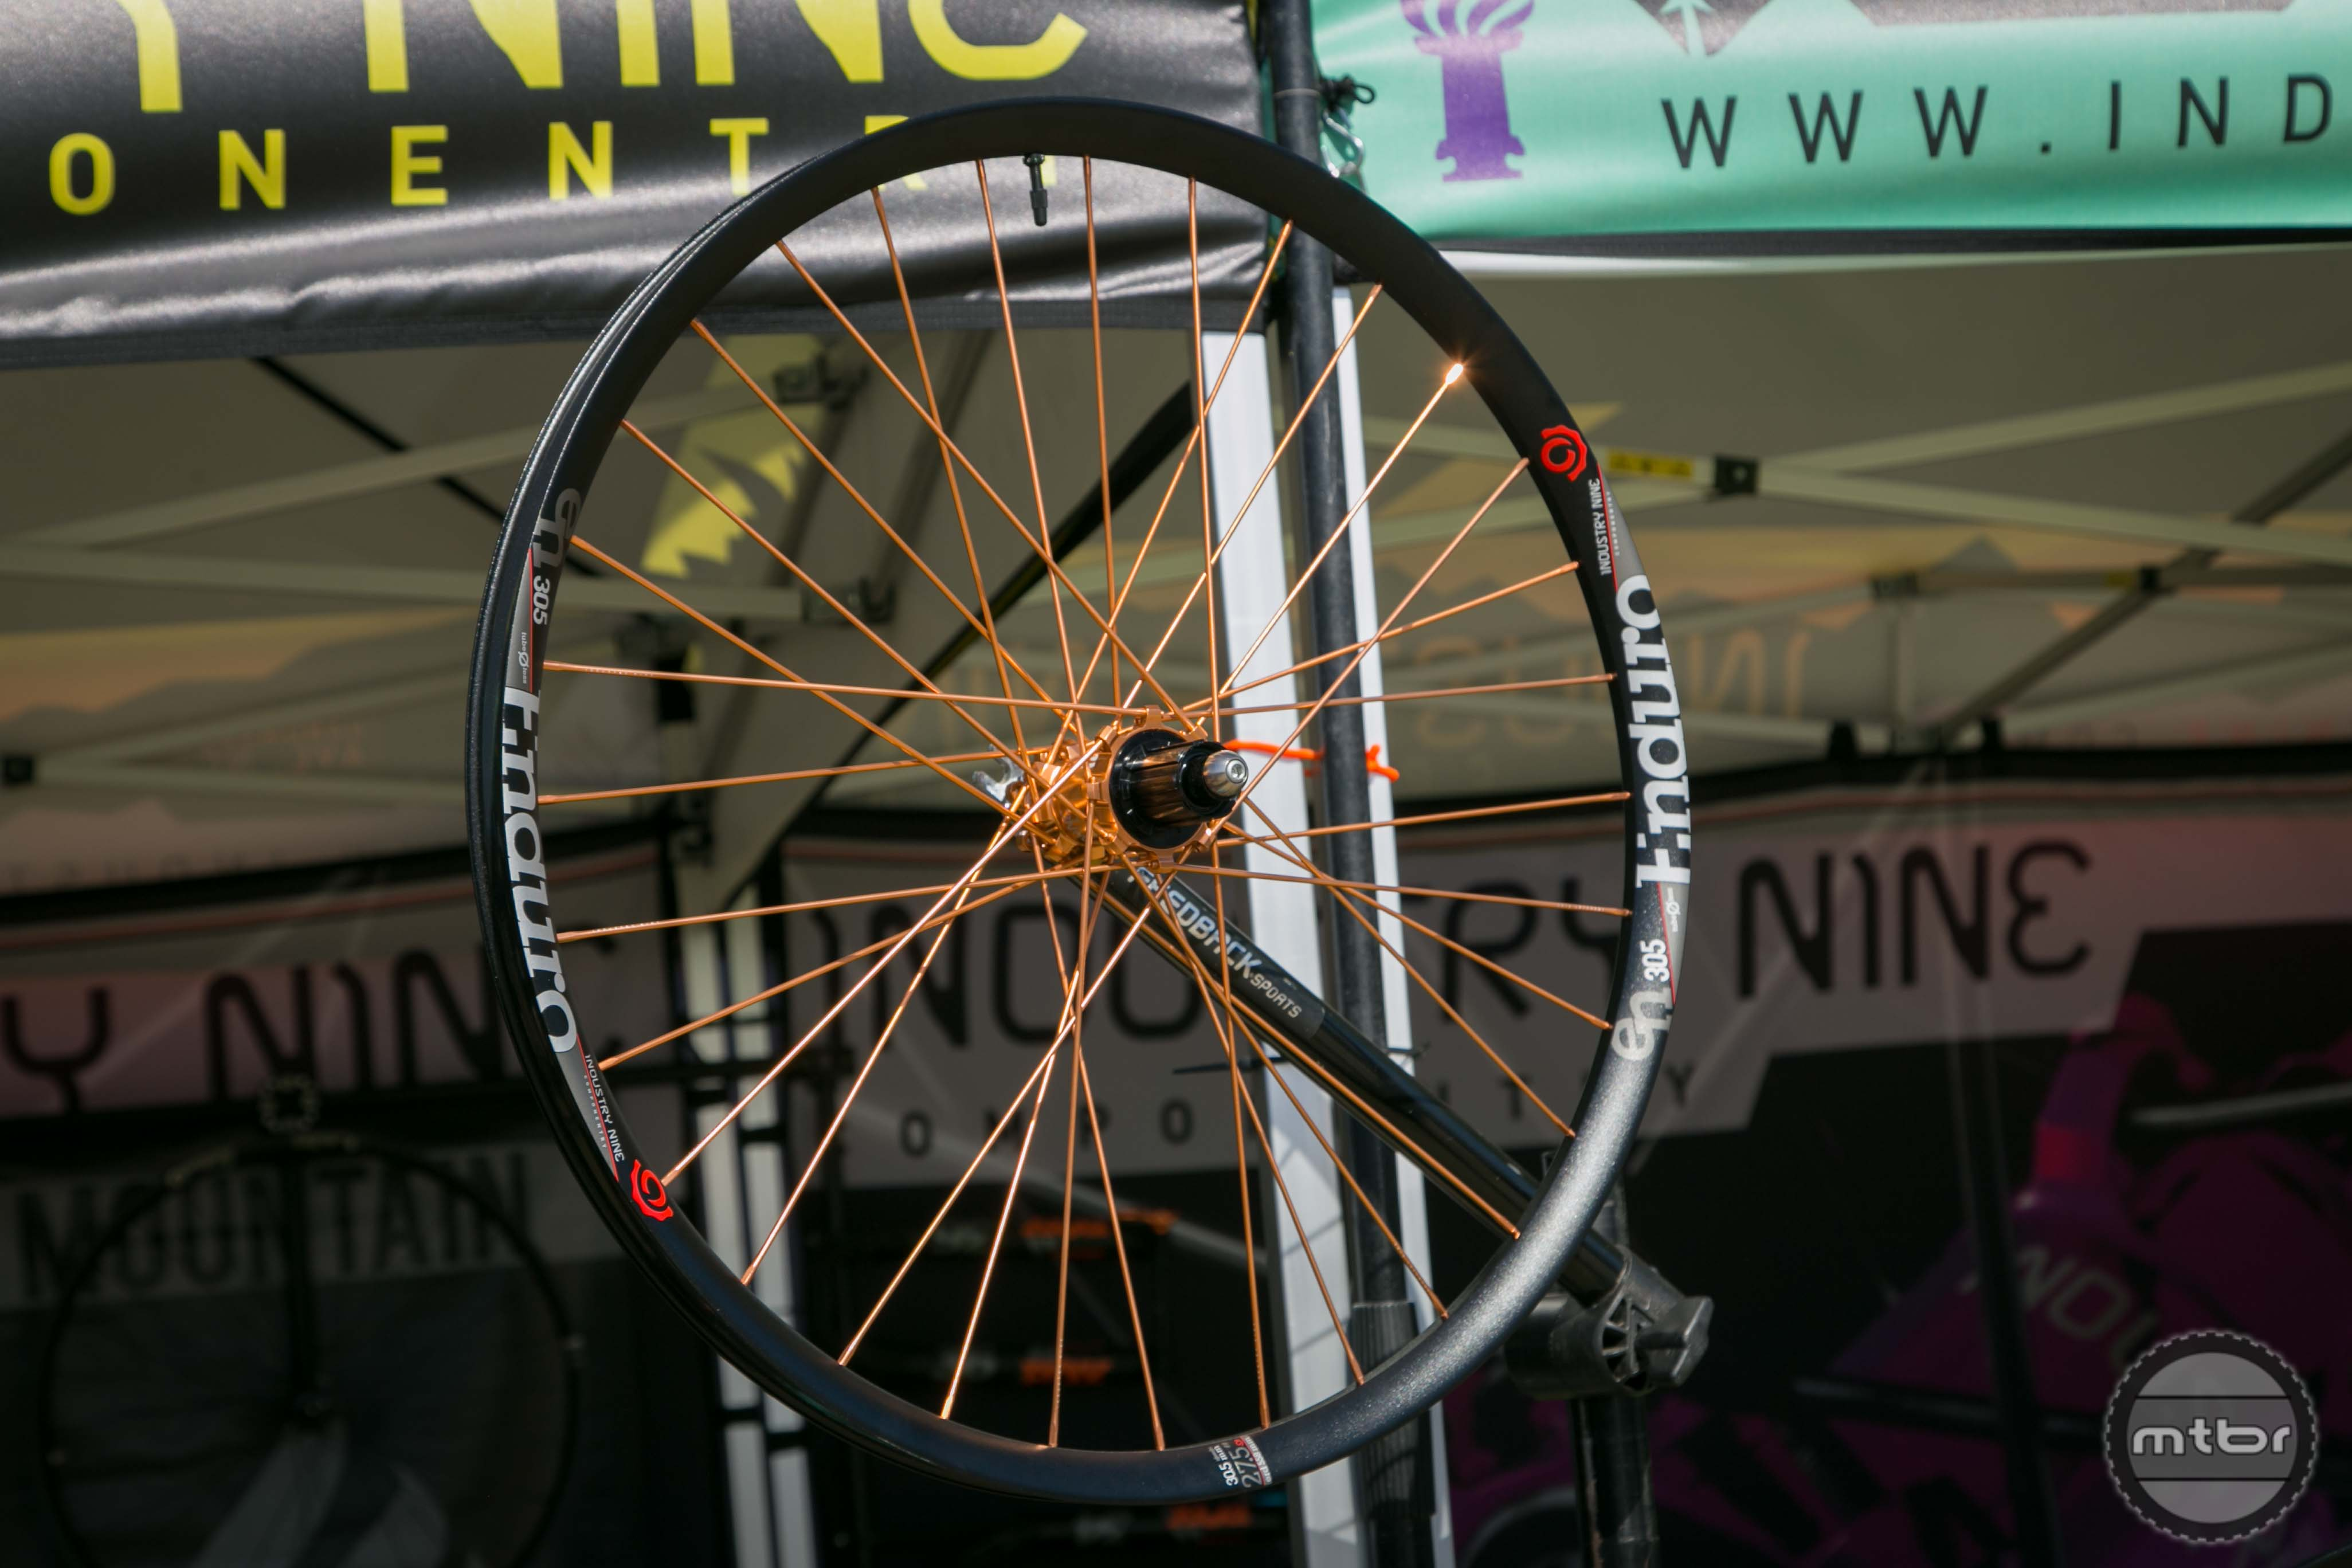 I9 is building 29 of these limited edition copper wheels. Why 29? That's the atomic number of carbon.